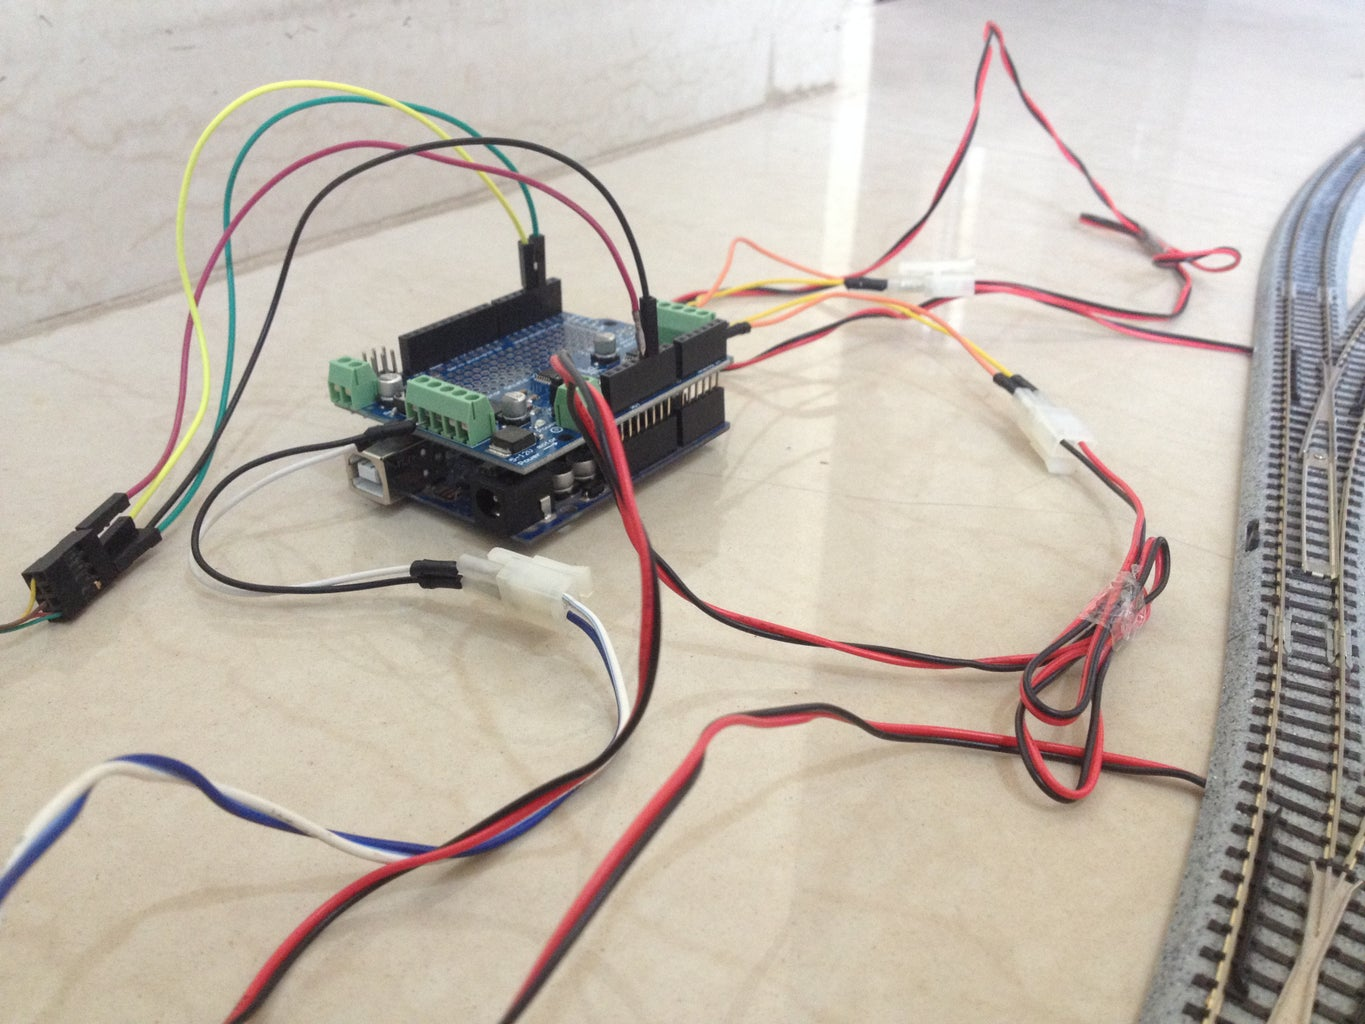 Connect the Motor Output Wires to the Turnouts and Track Power